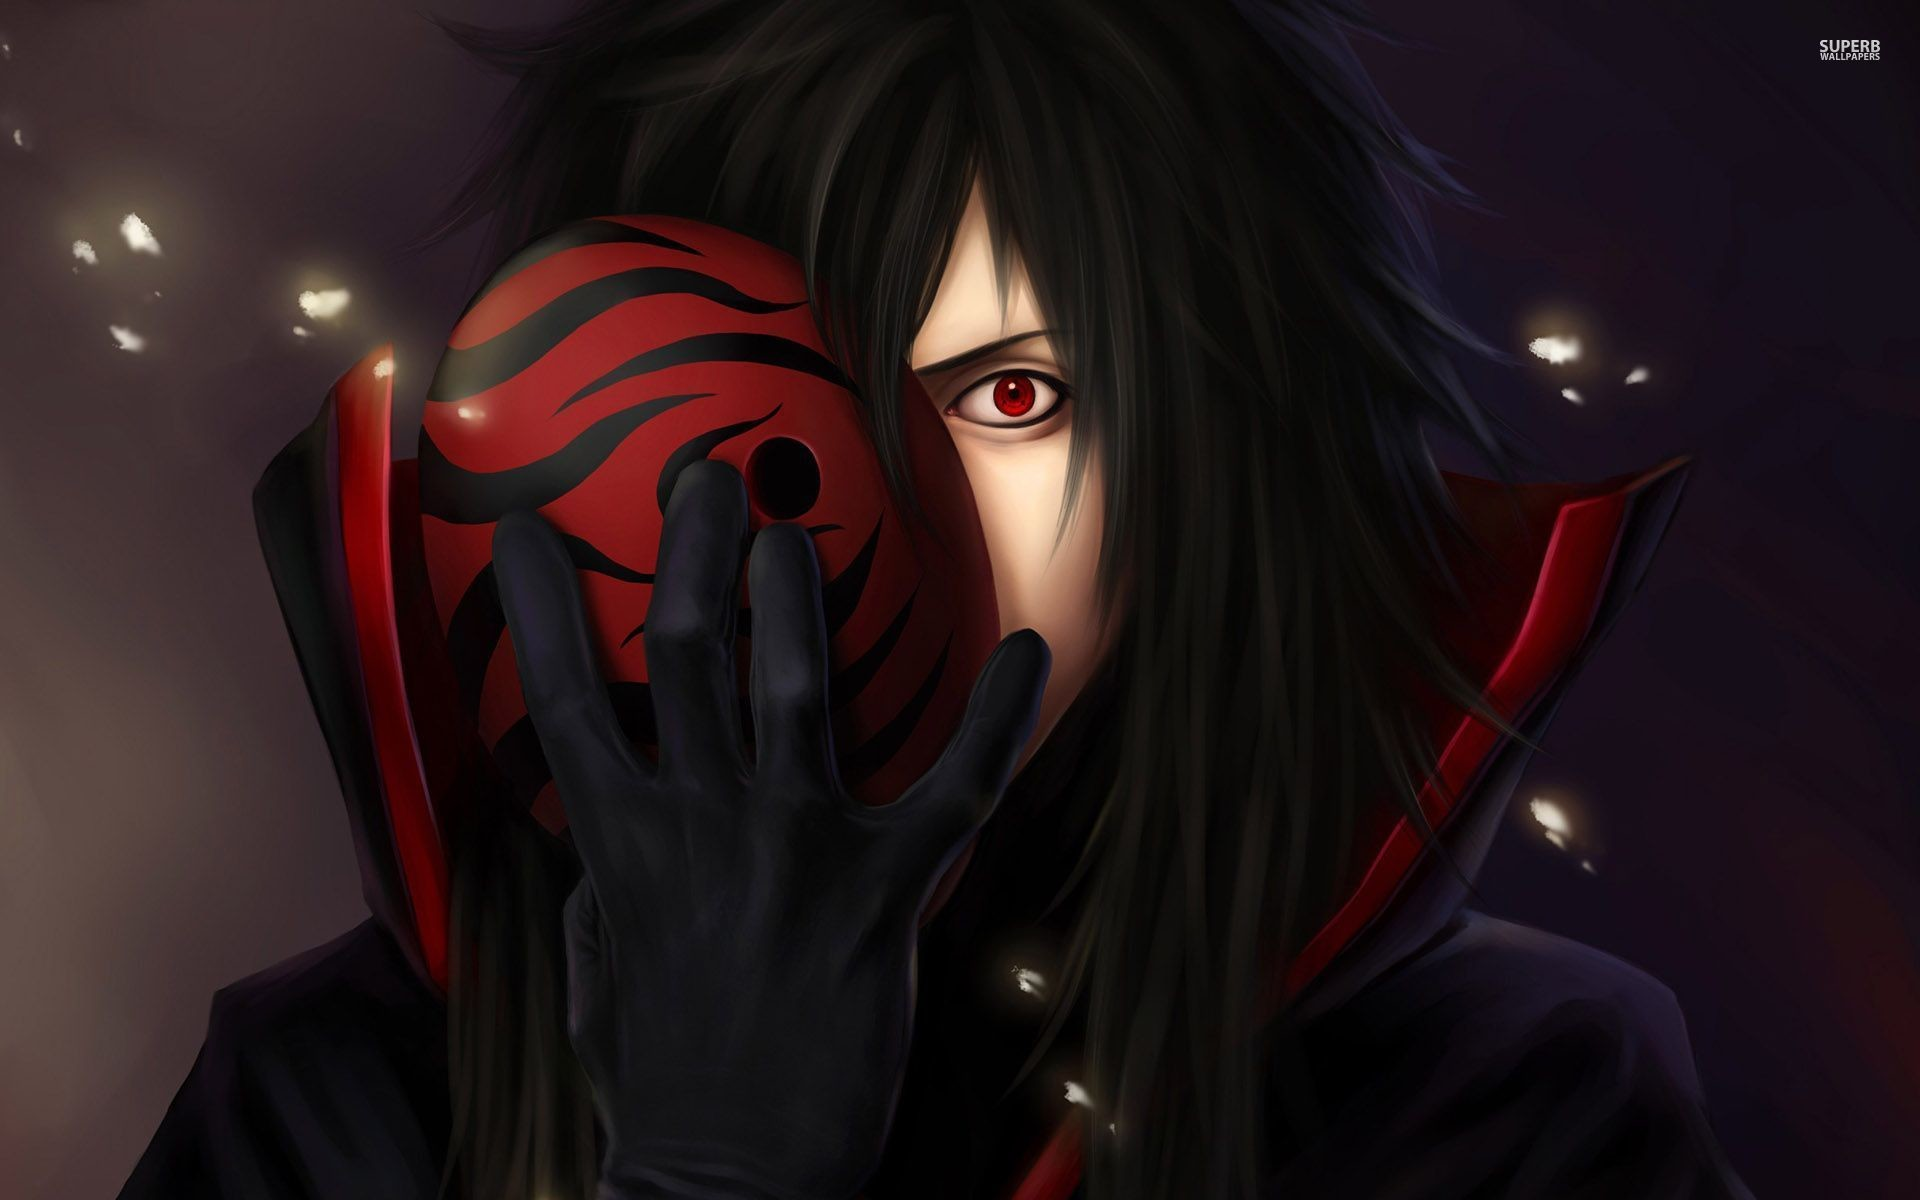 naruto HD wallpapers a37 madara uchiha Naruto Wallpapers and Backgrounds  and download them on all your